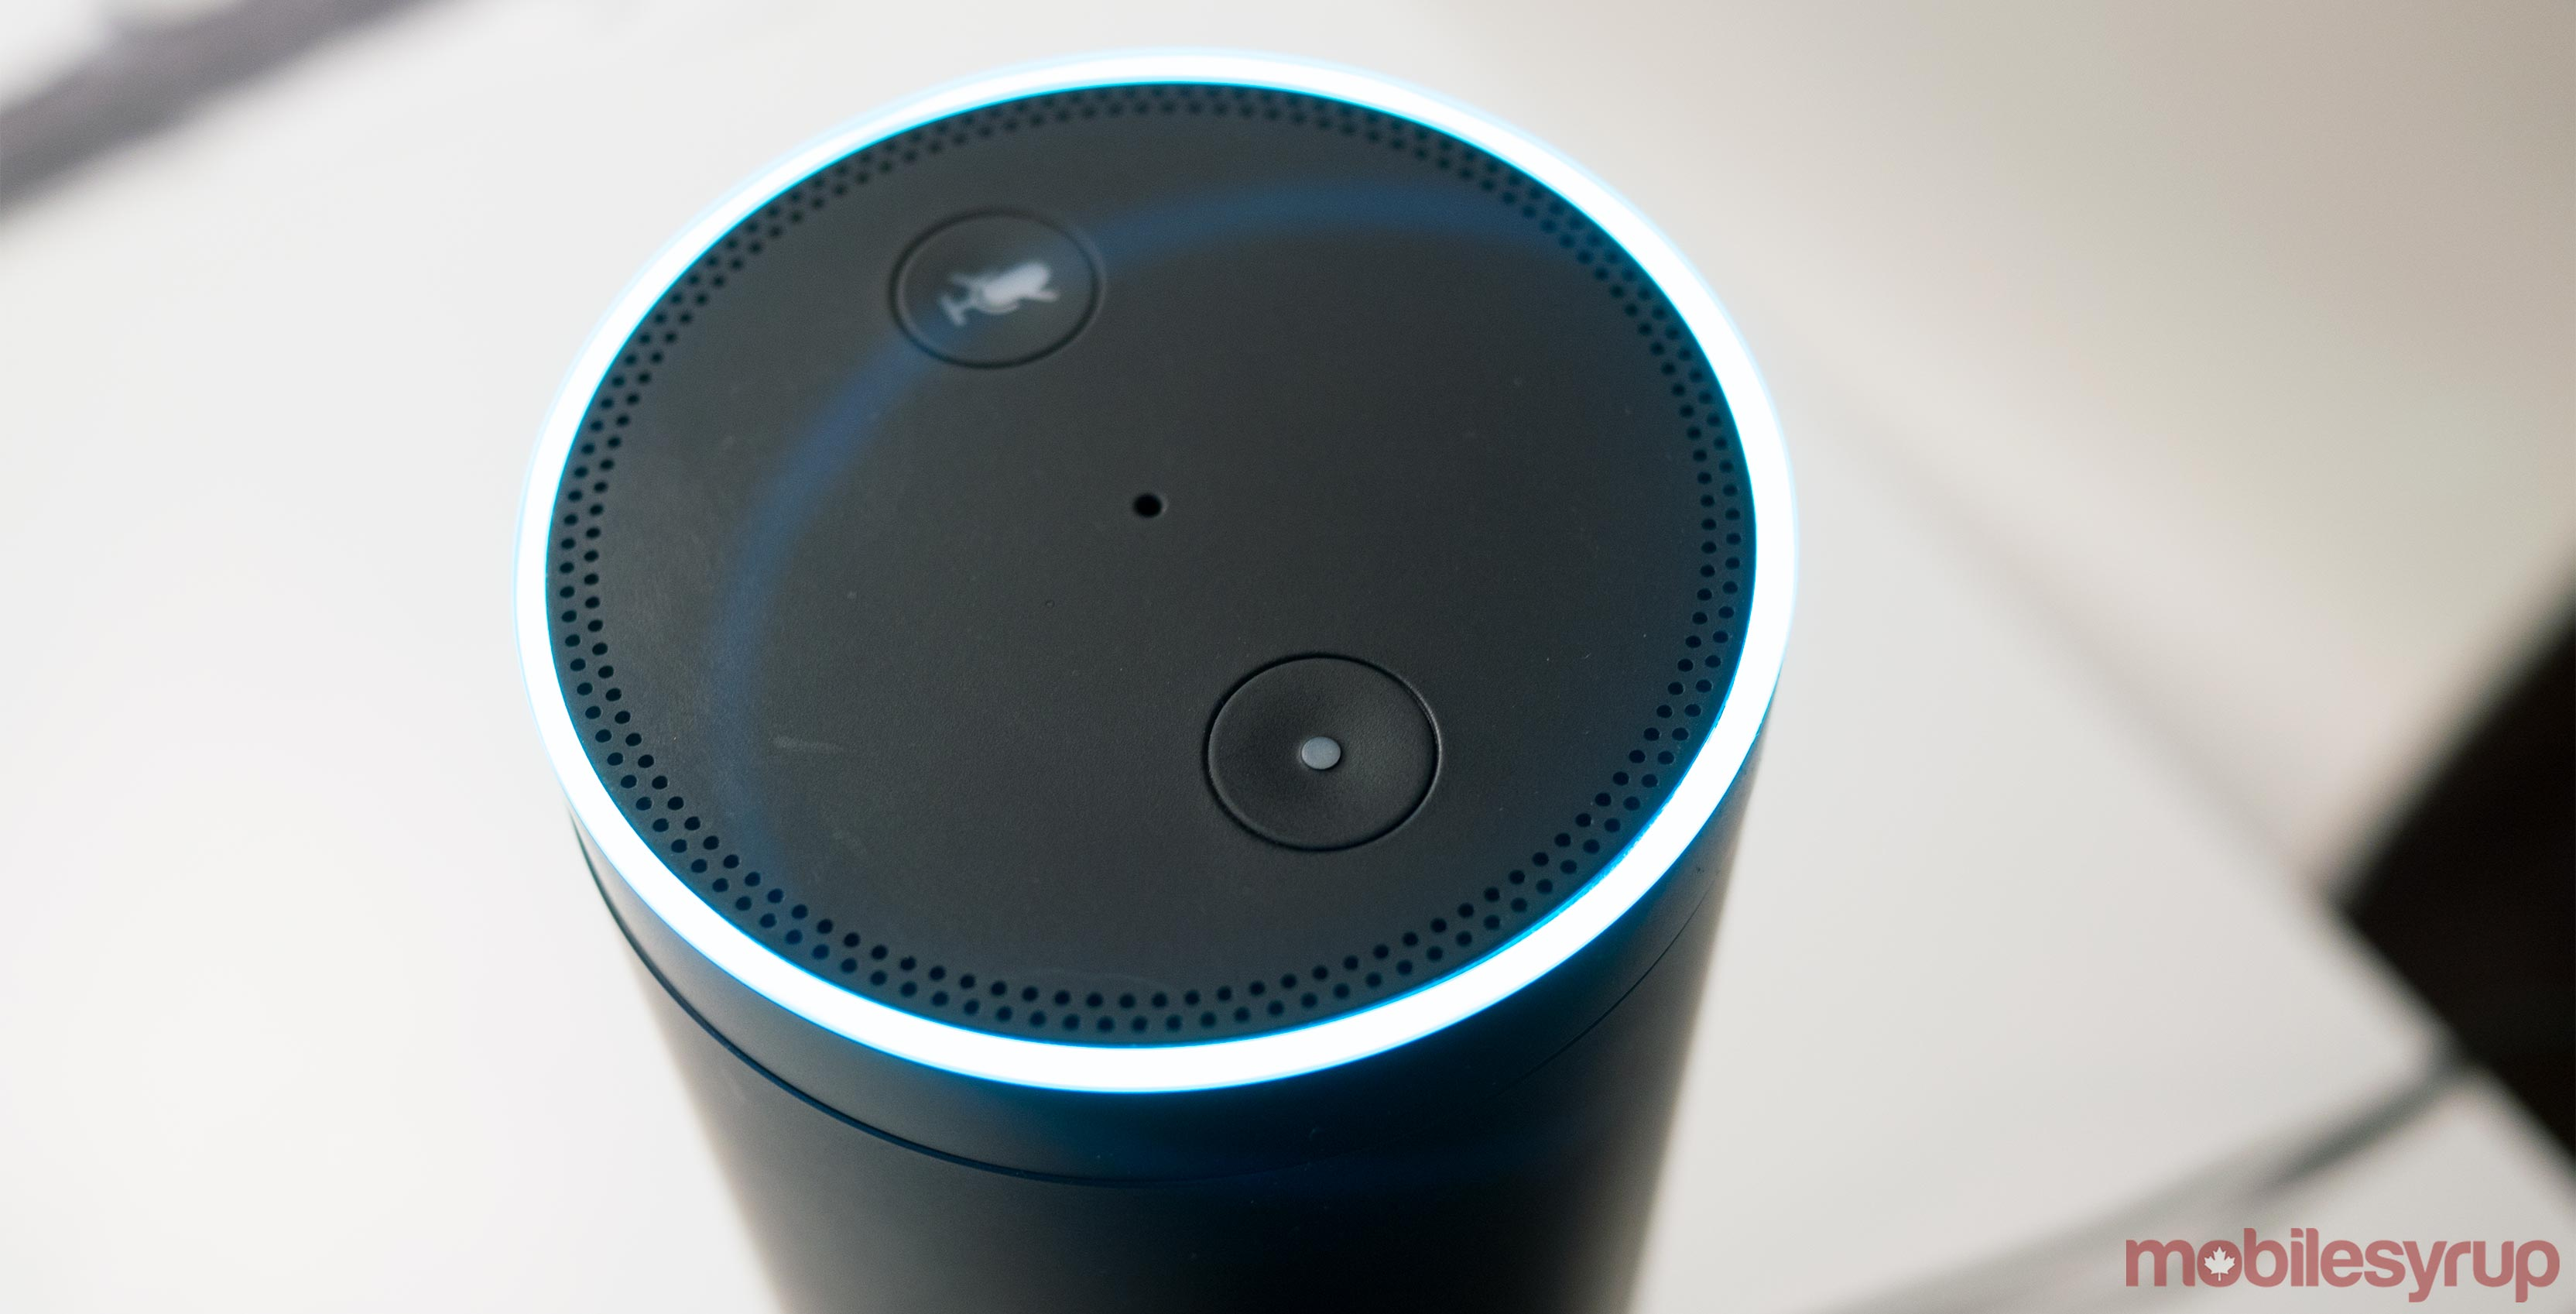 Alexa's new 'Follow-Up Mode' listens for more commands